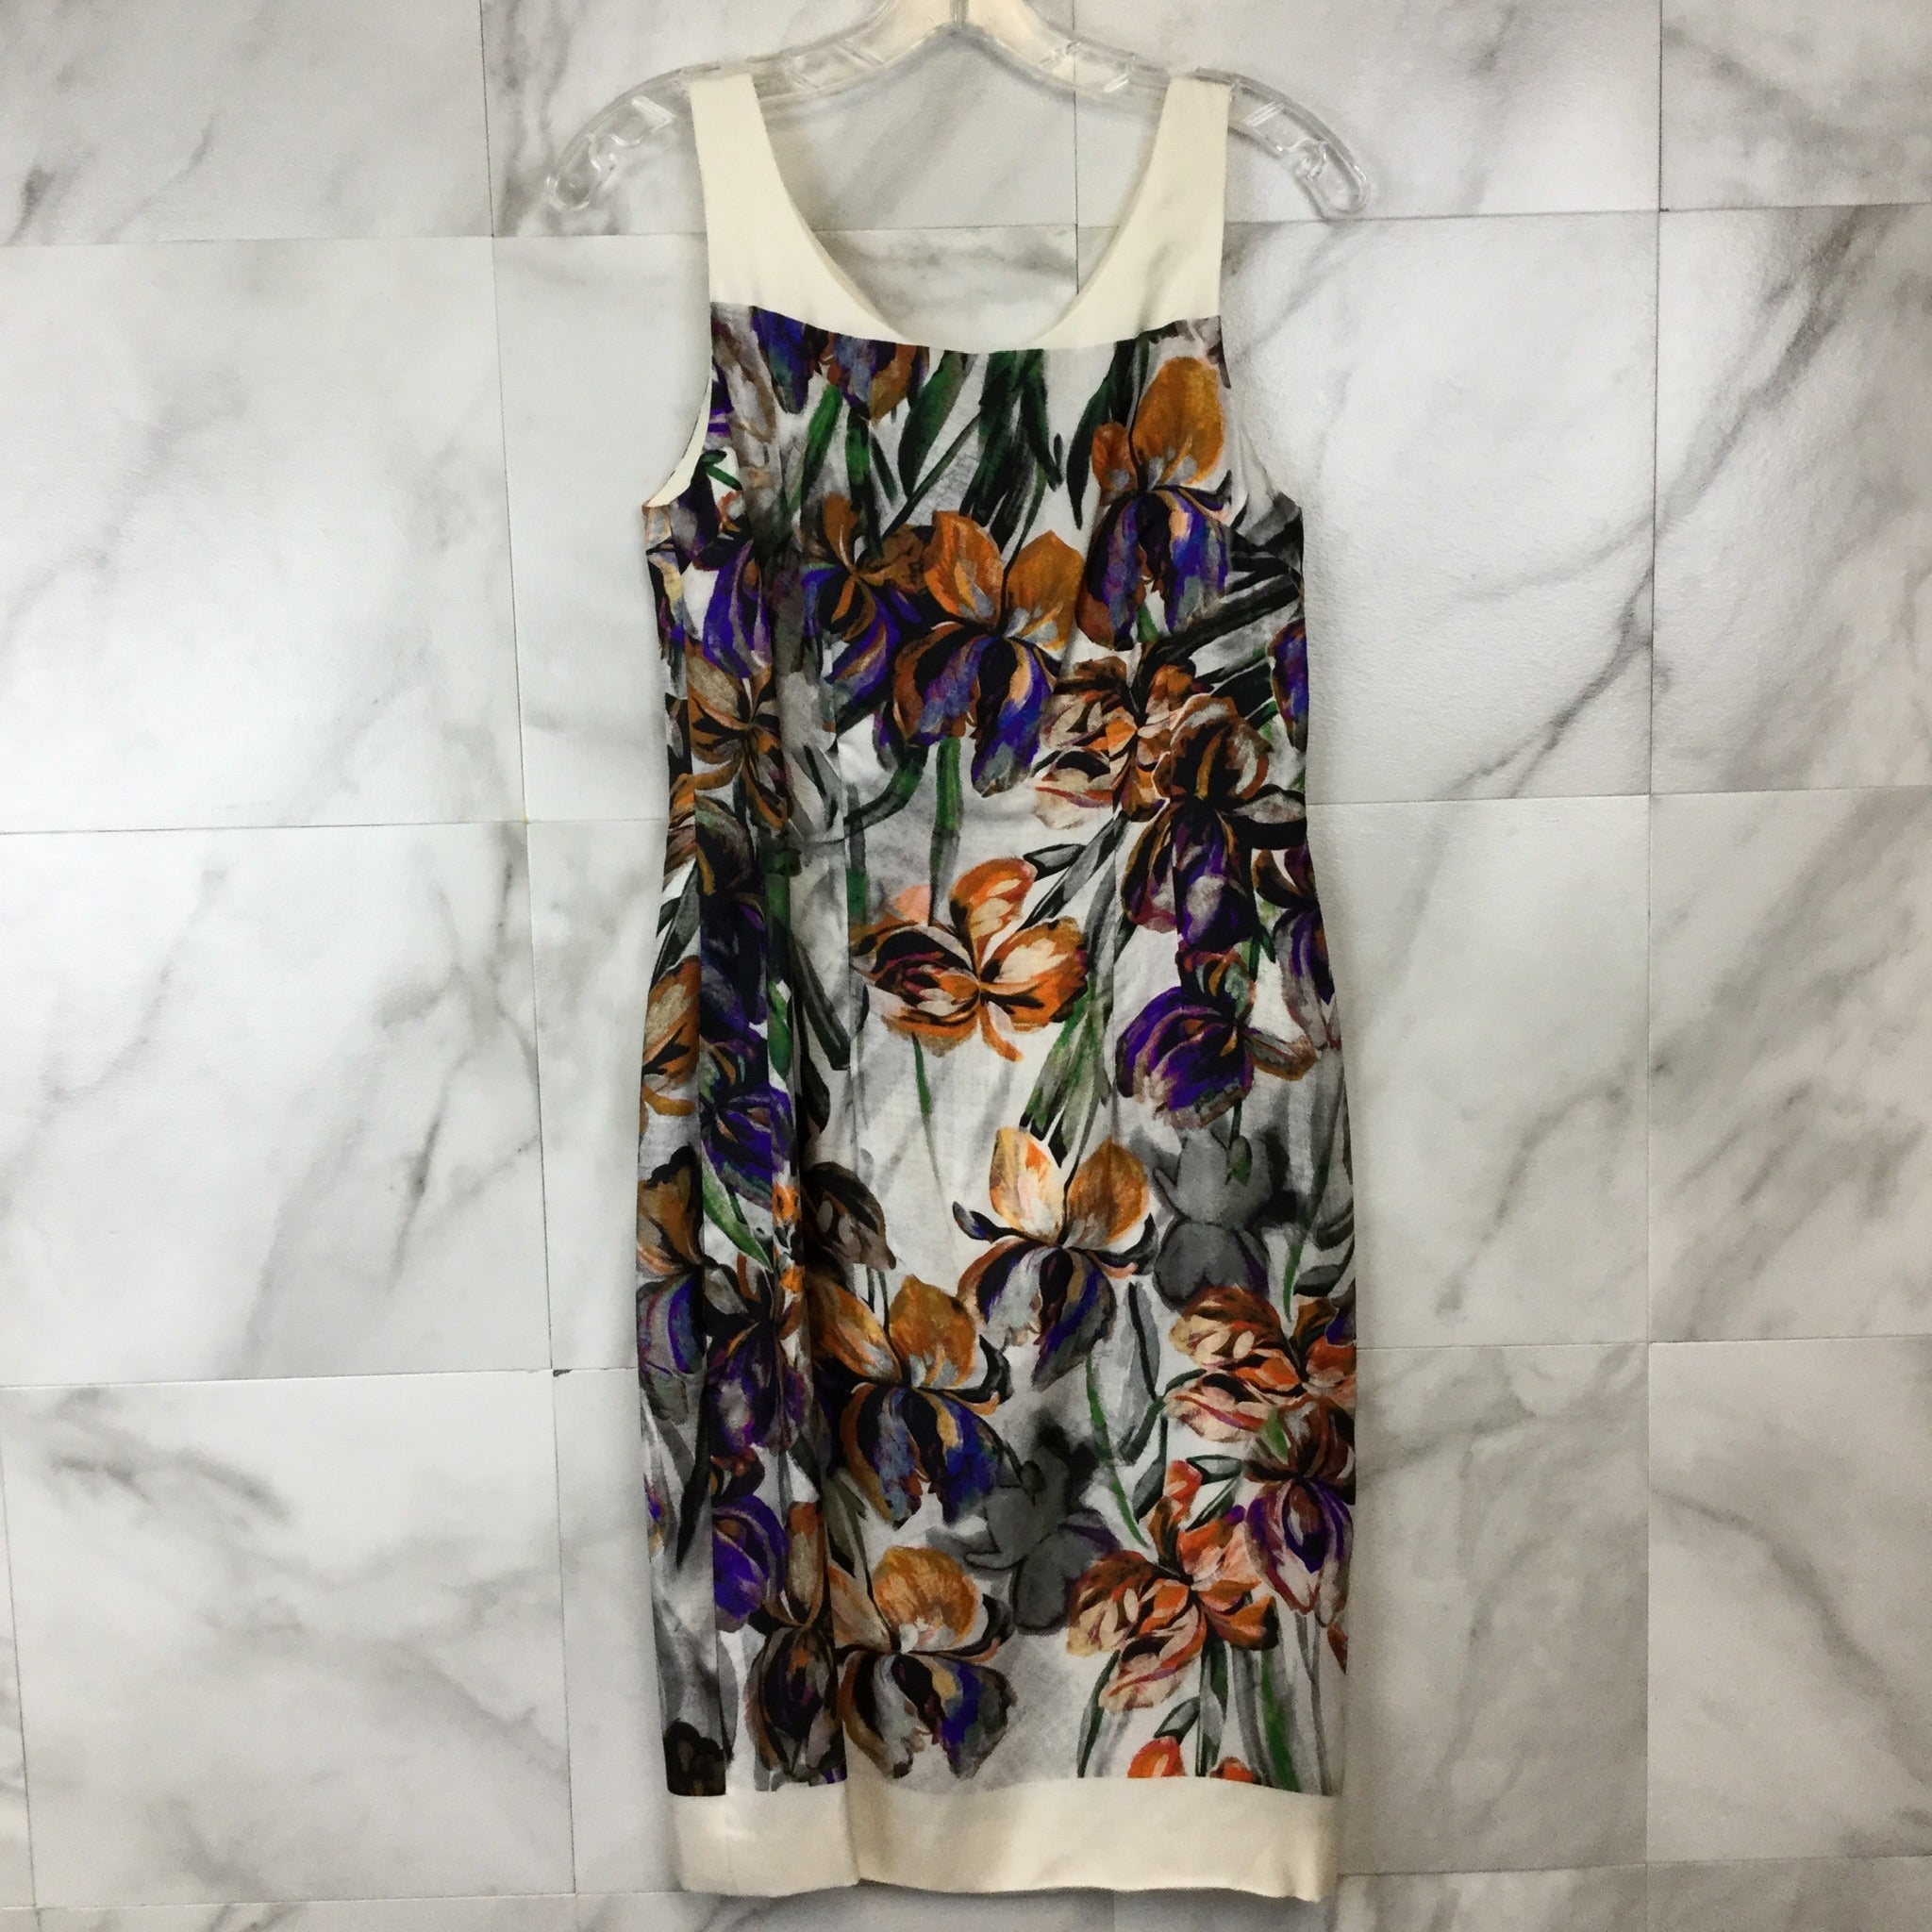 Dries Van Noten Floral Sheath Dress - size 38